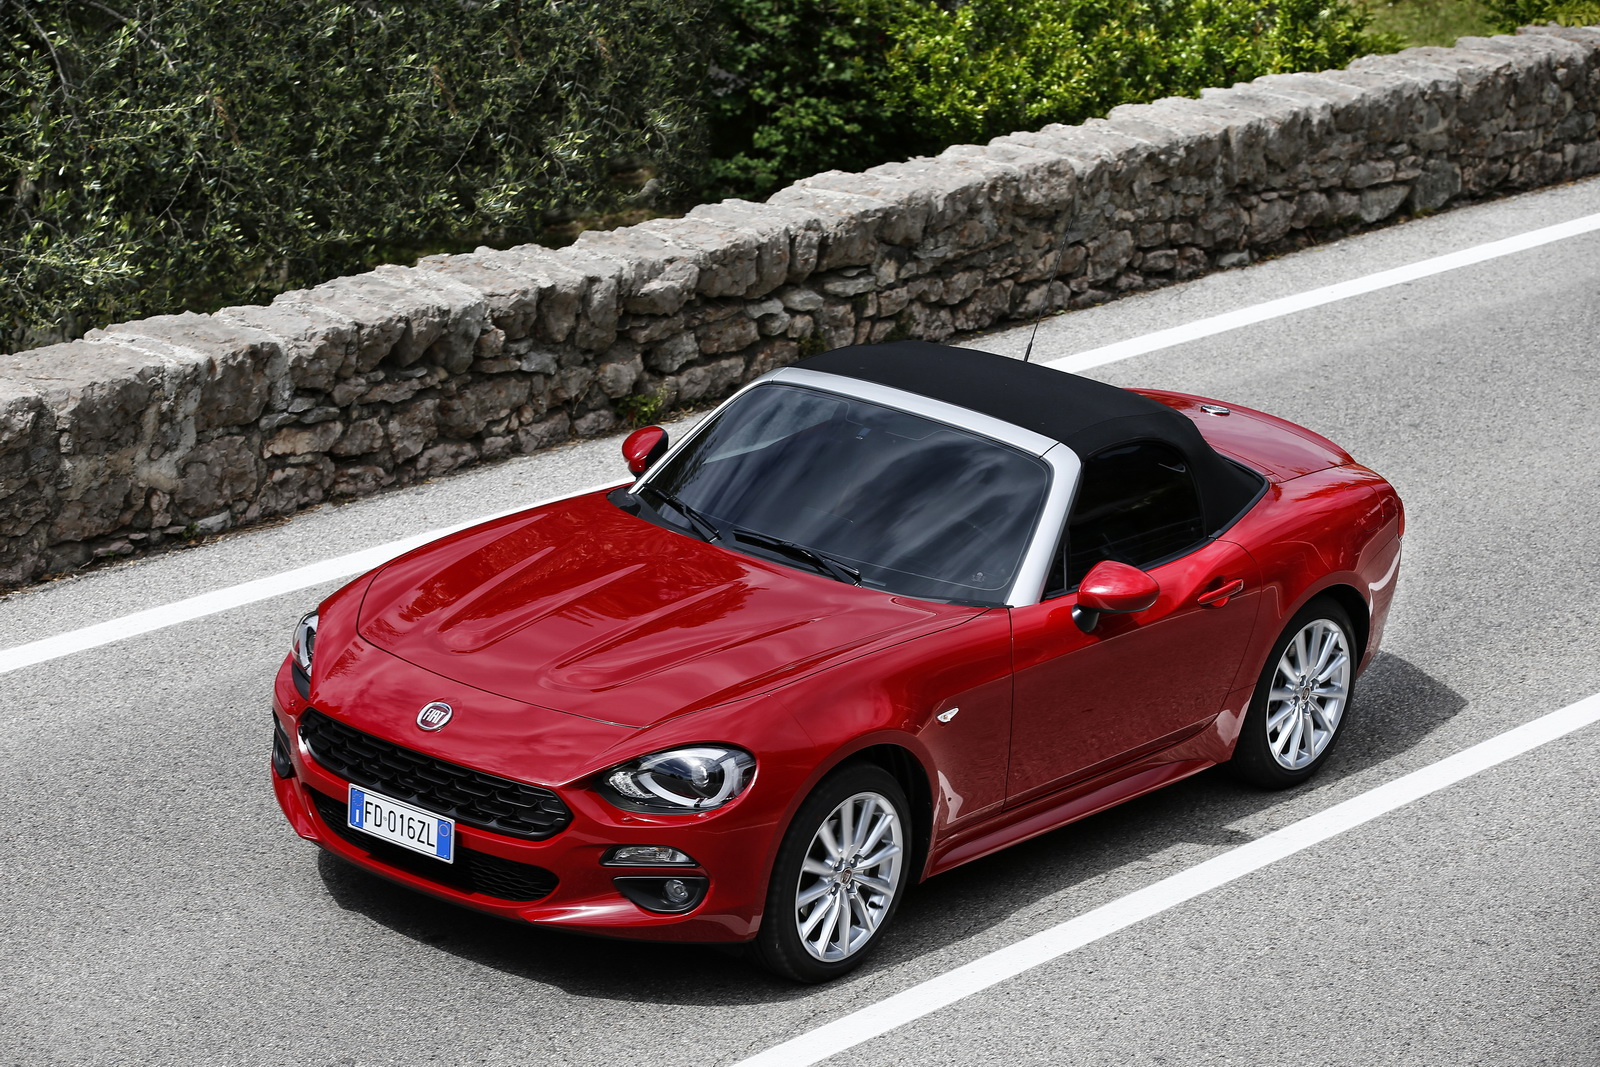 New Fiat 124 Spider Priced From 19545 on new fiat 124 spider convertible